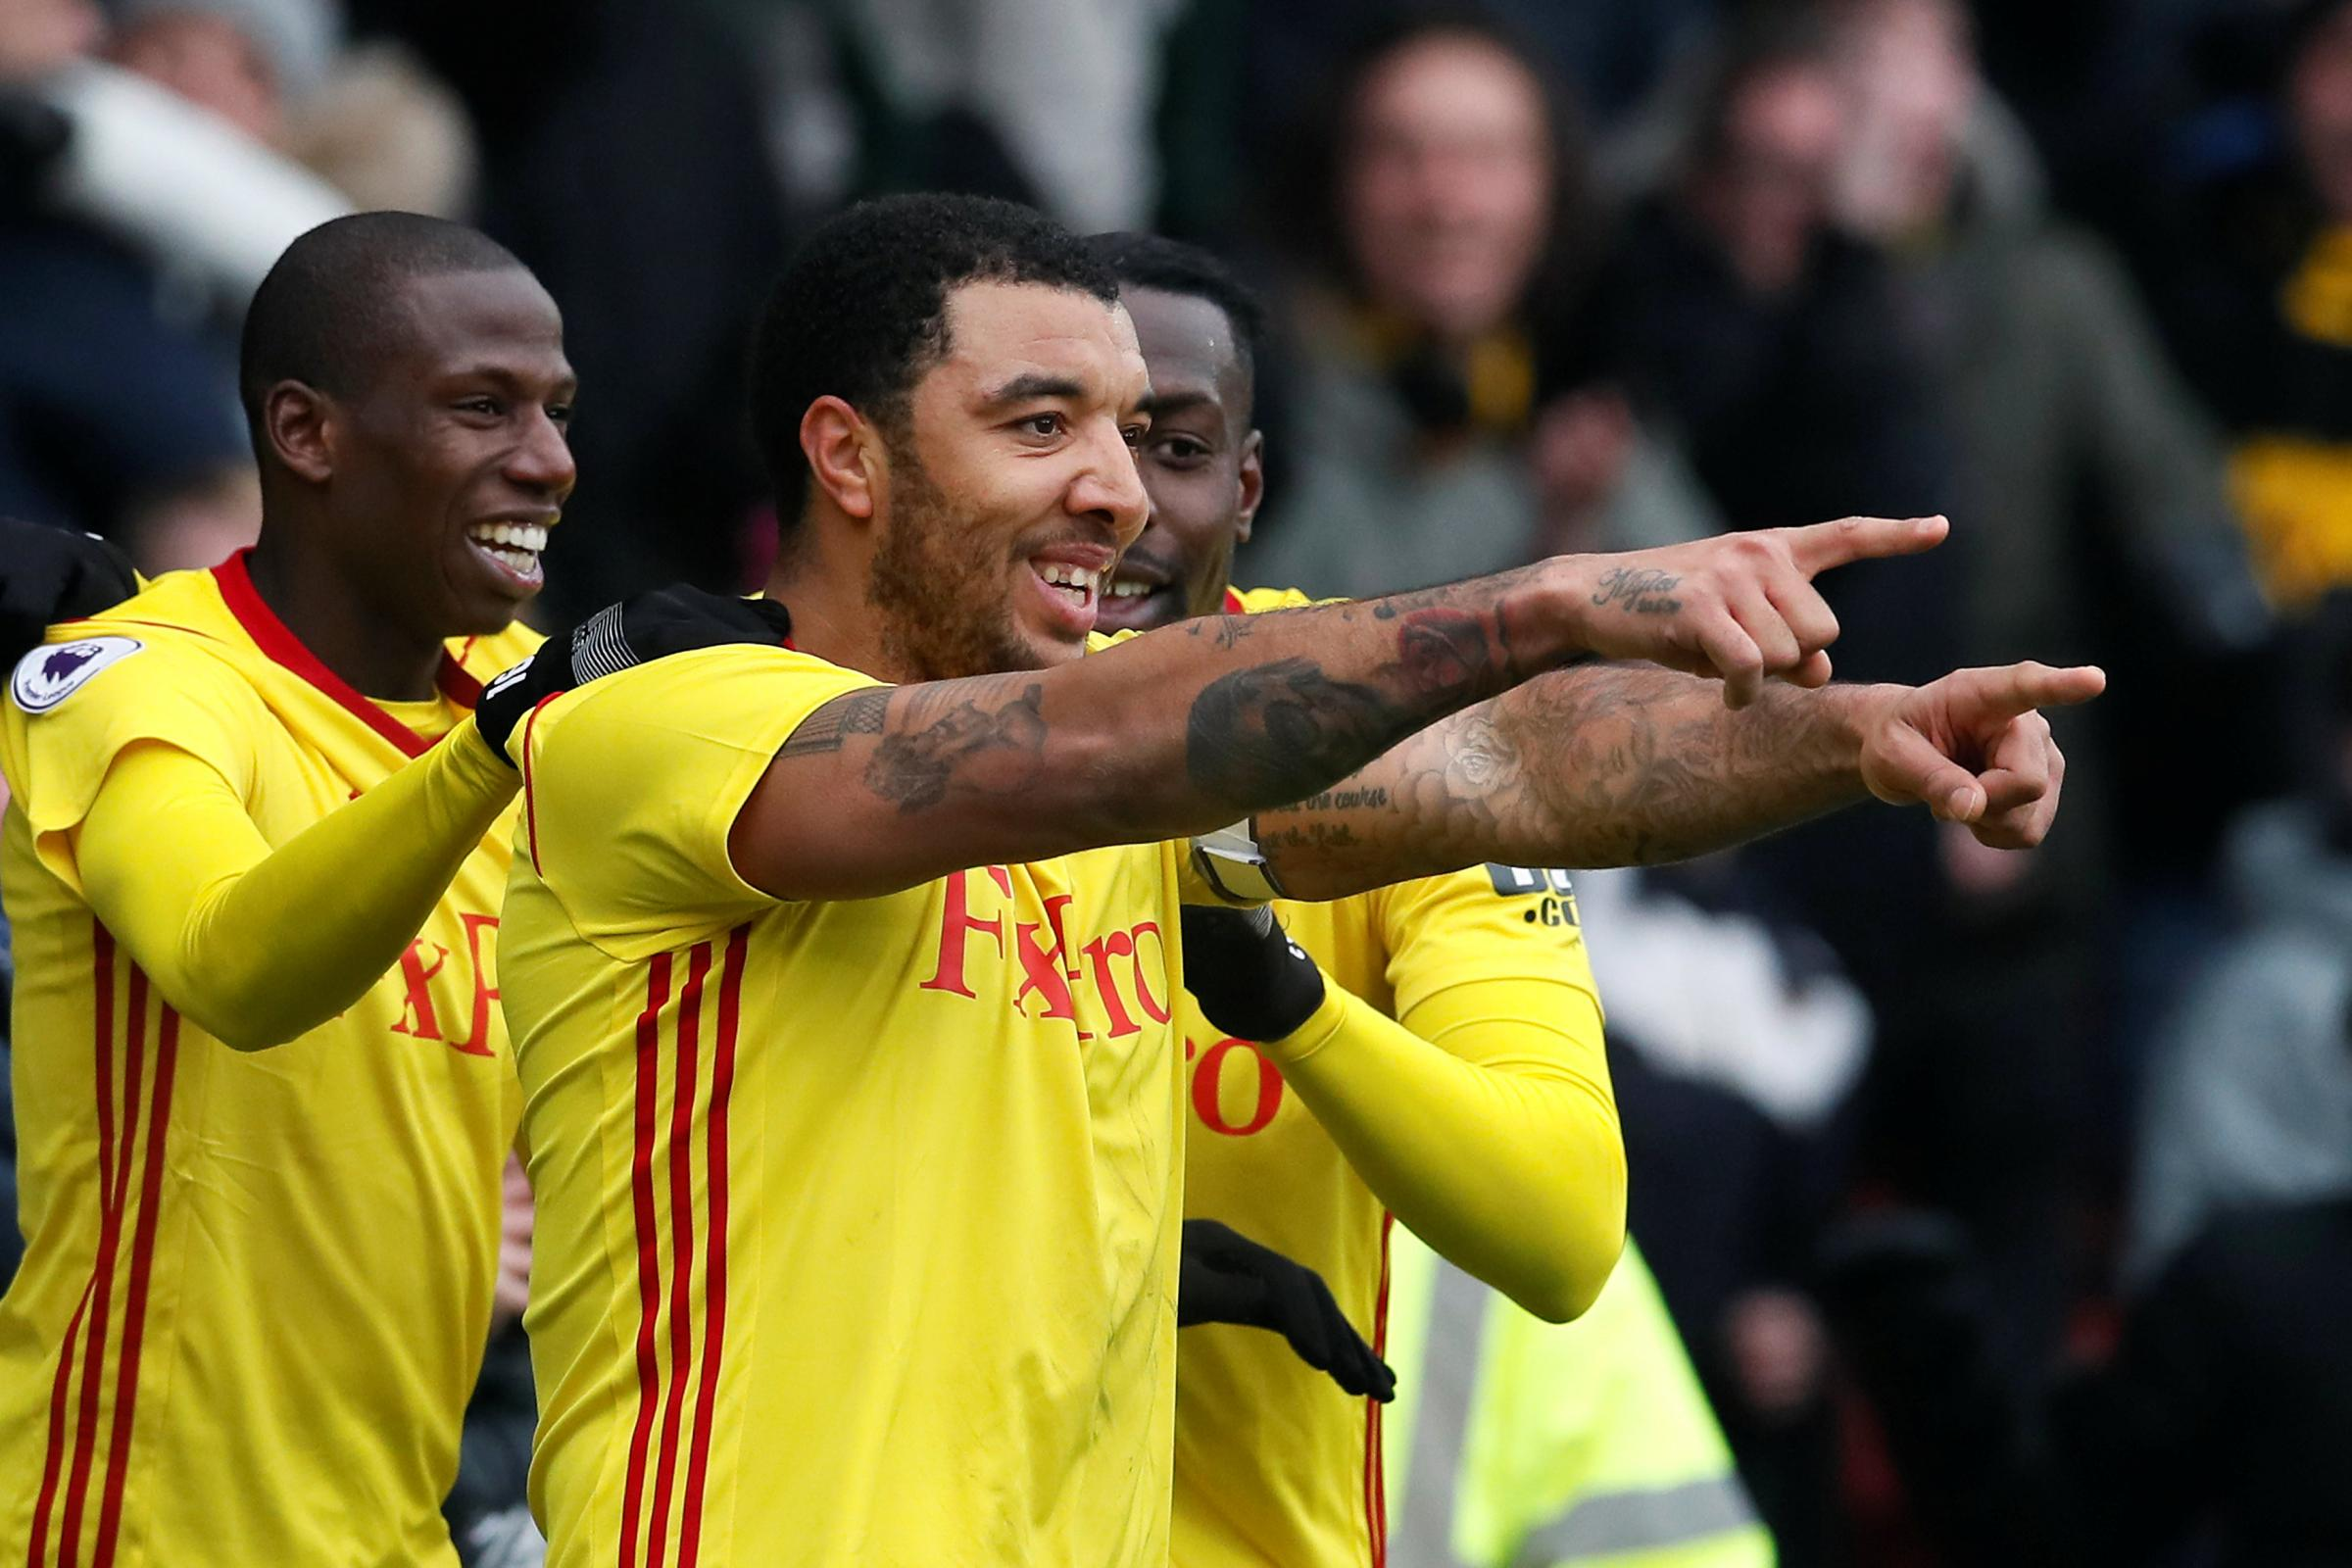 All smiles: Troy Deeney celebrates his winner against West Bromwich Albion on Saturday. Picture: Action Images